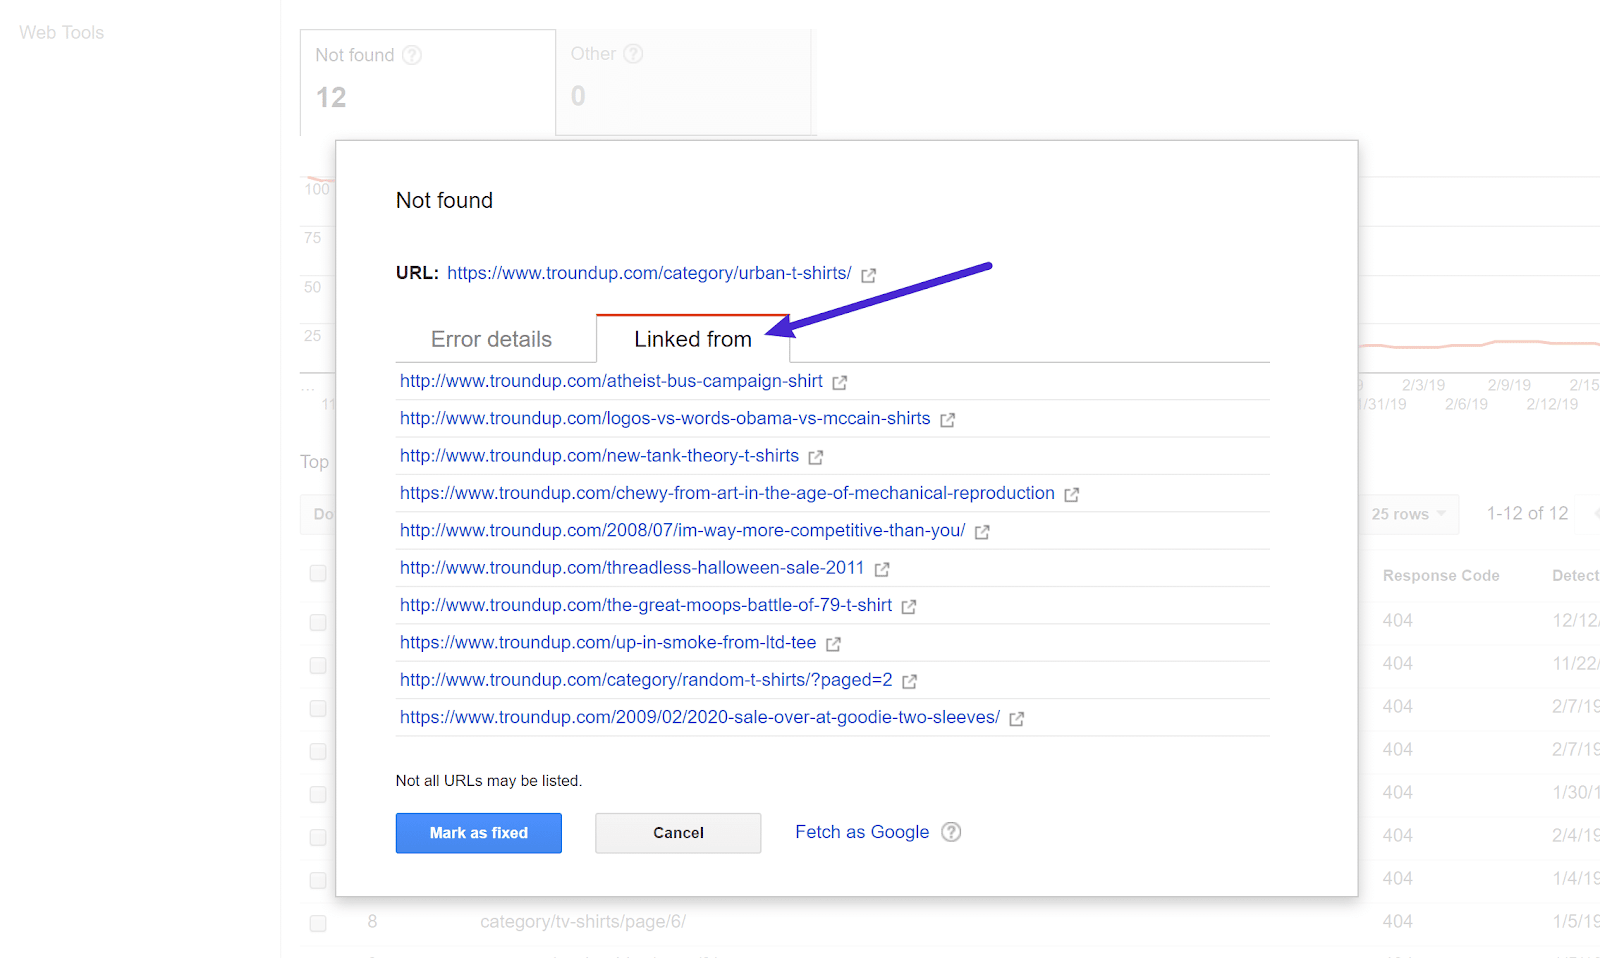 The data collection report allows you to view pages that link to 404 pages